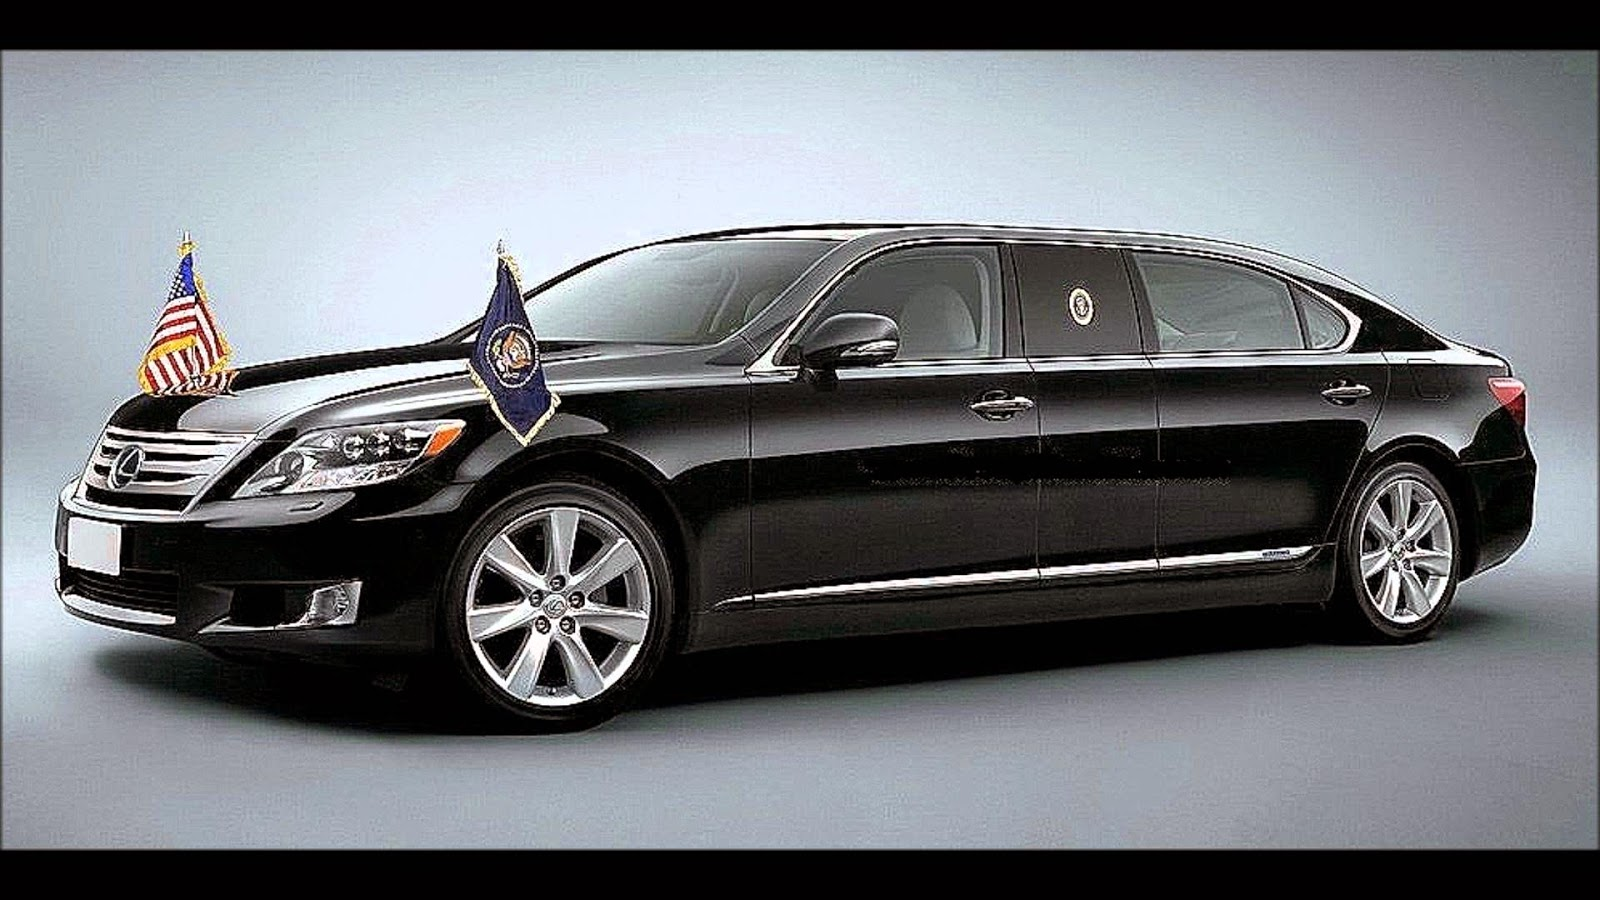 OBAMA NEW LIMO LEXUS LS600hl -The Best Car of the World